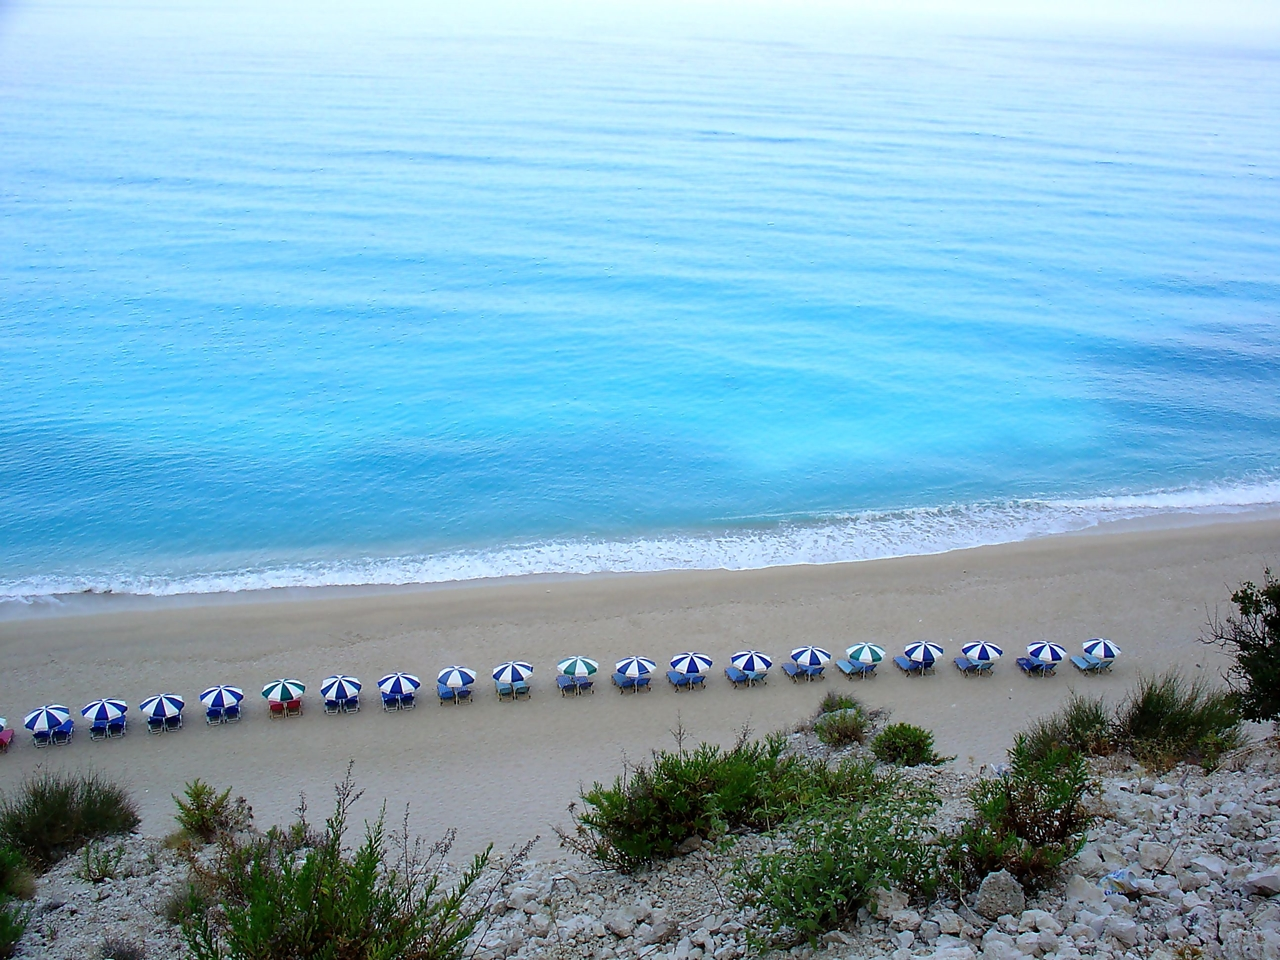 Picturesque beaches of the Greek island of Lefkada 10